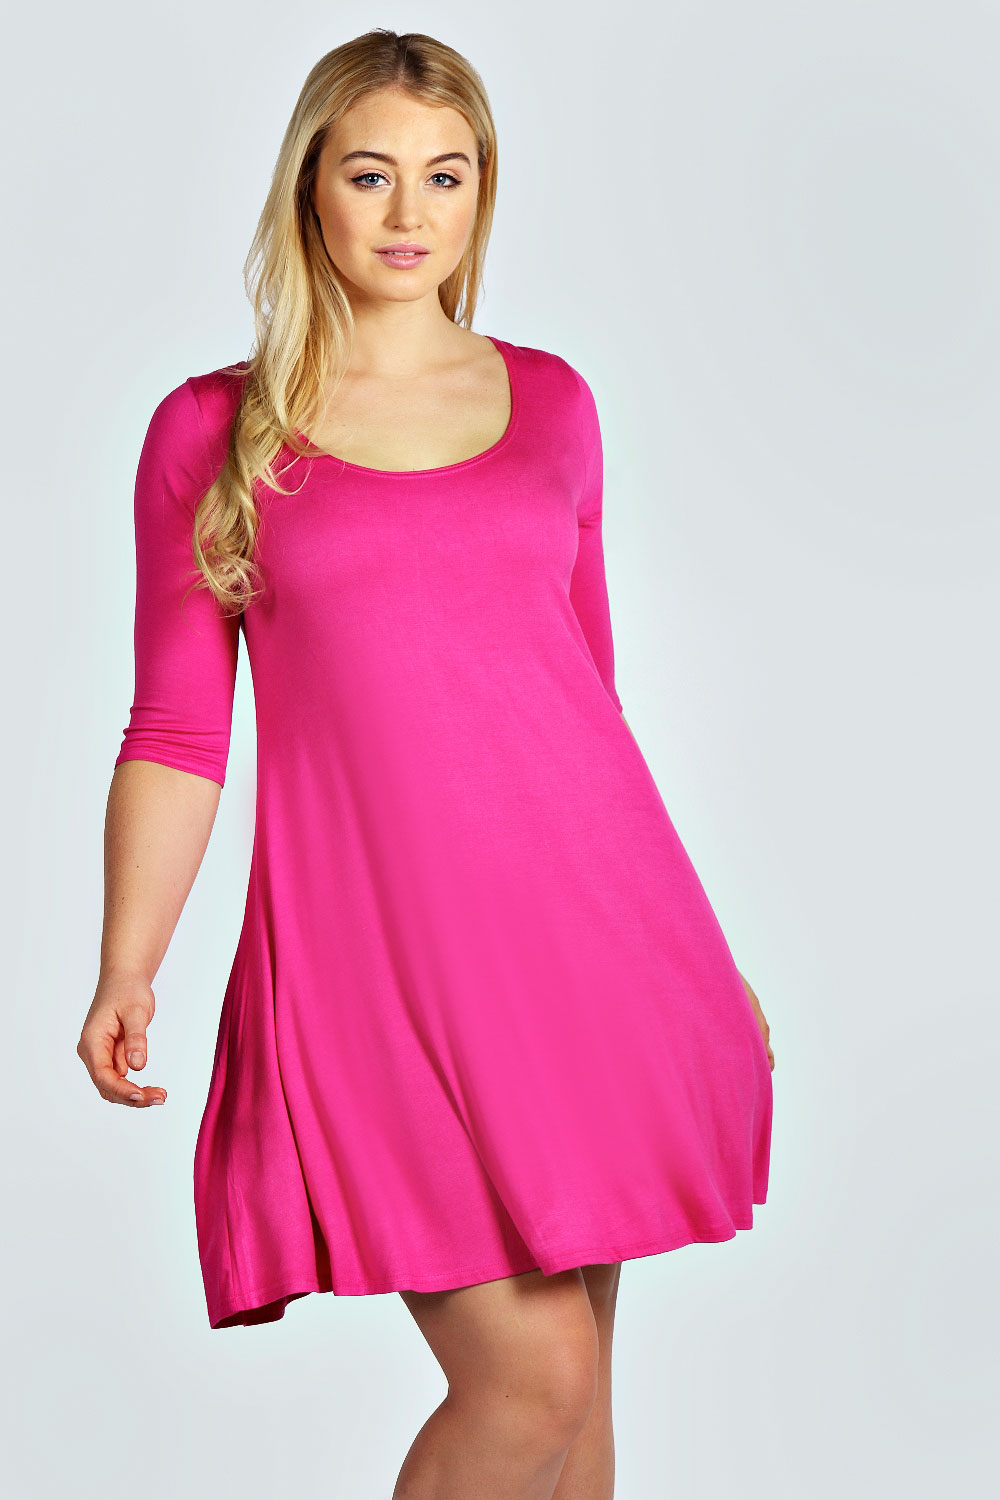 Boohoo-Womens-Plus-Size-Cassie-Hip-Length-Round-Neck-3-4-Sleeve-Swing-Dress